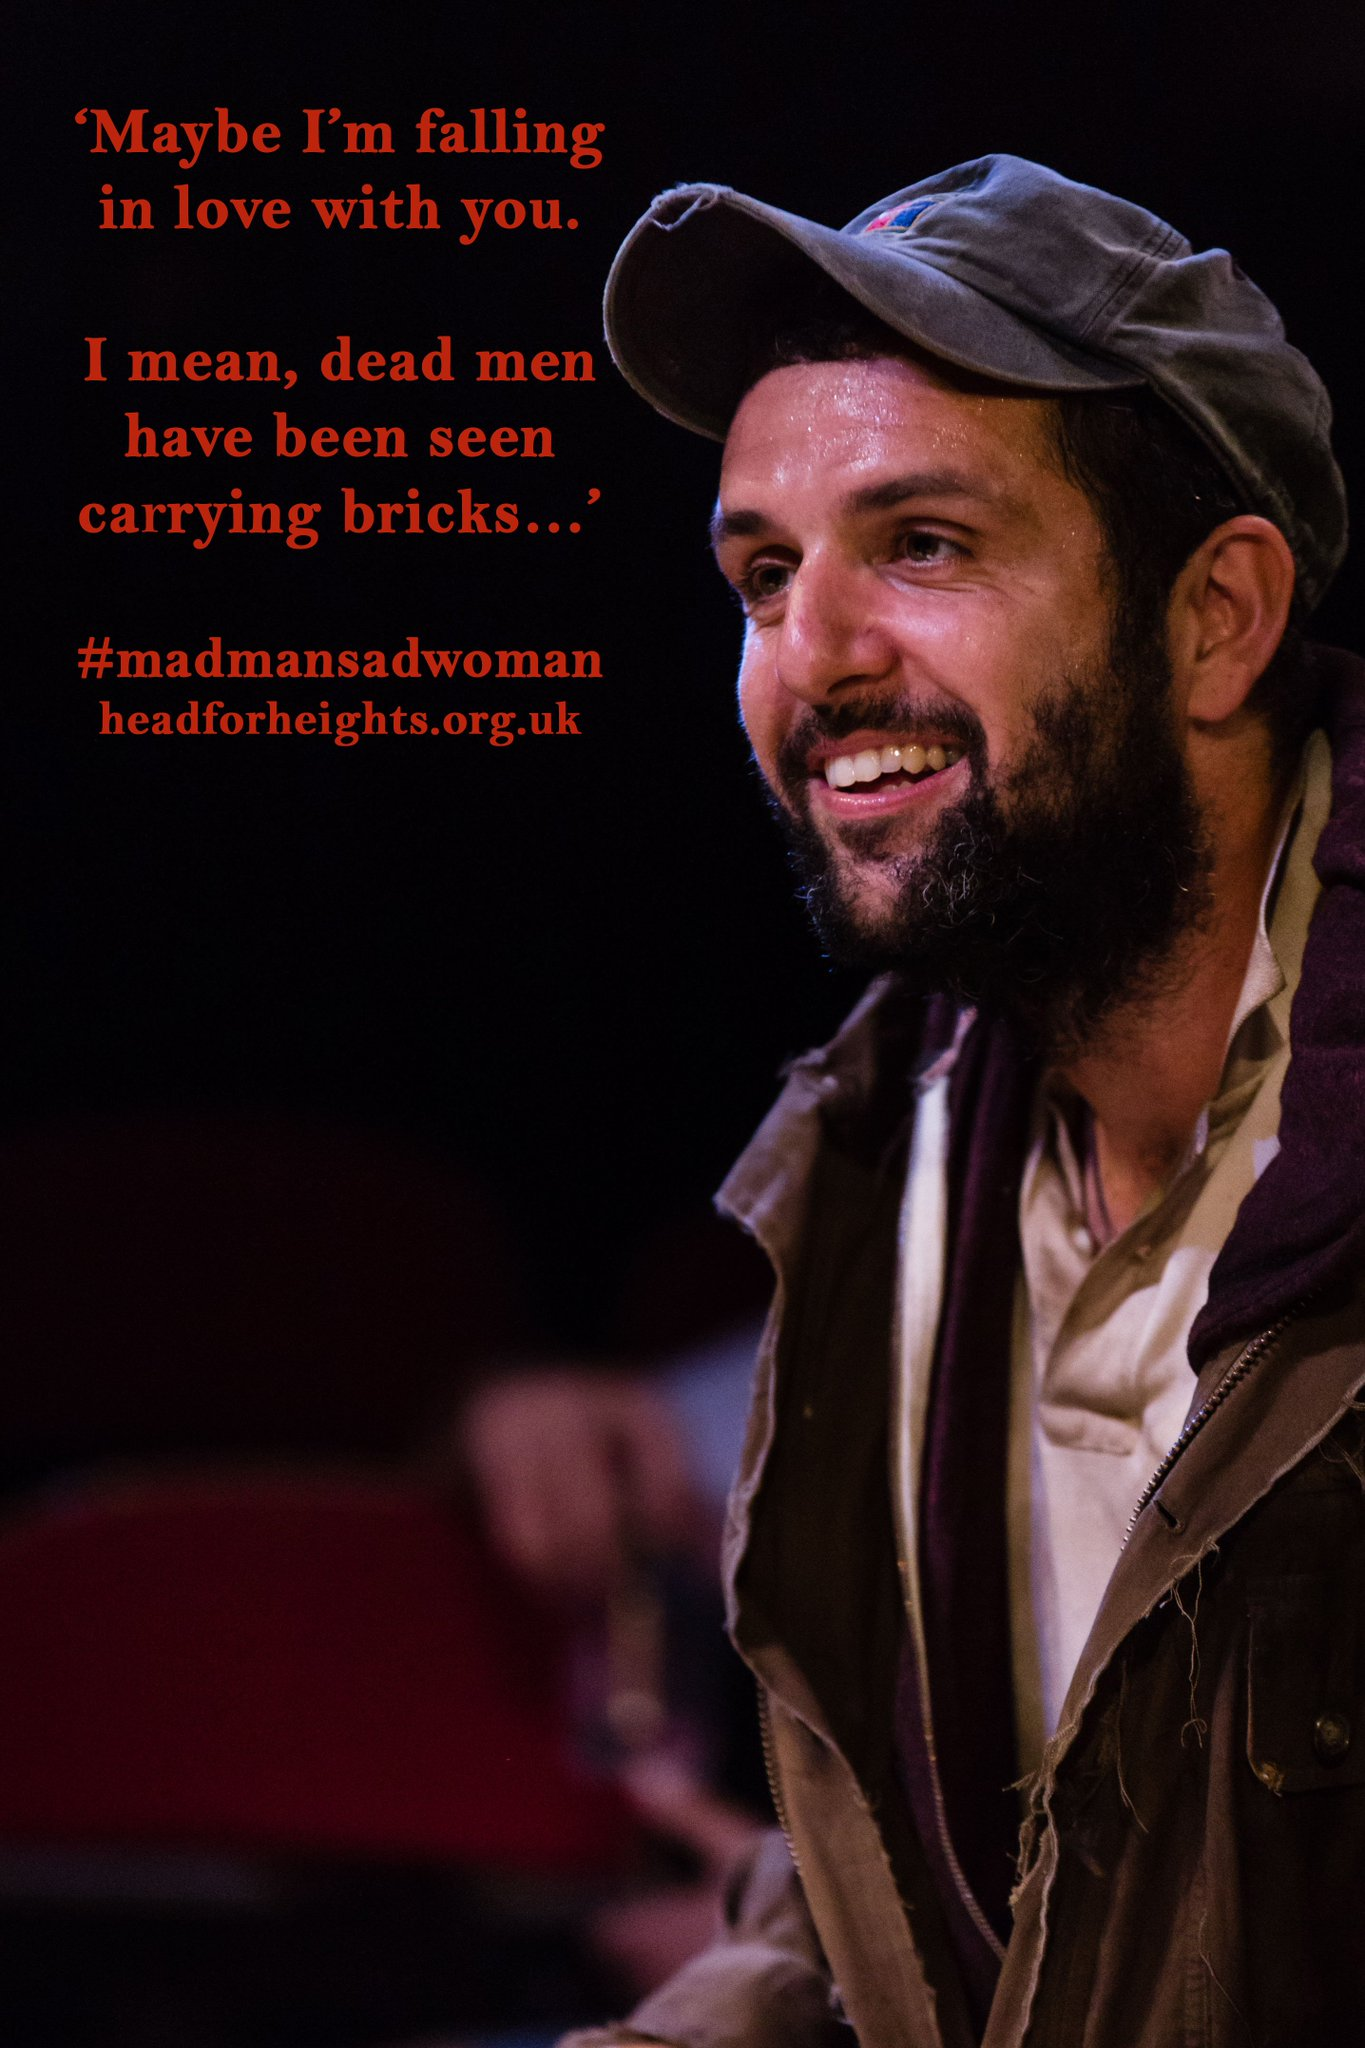 Our Huinca (Bil Stuart), ever the charmer... #madmansadwoman @SpaceArtsCentre https://t.co/07k0onC7E2